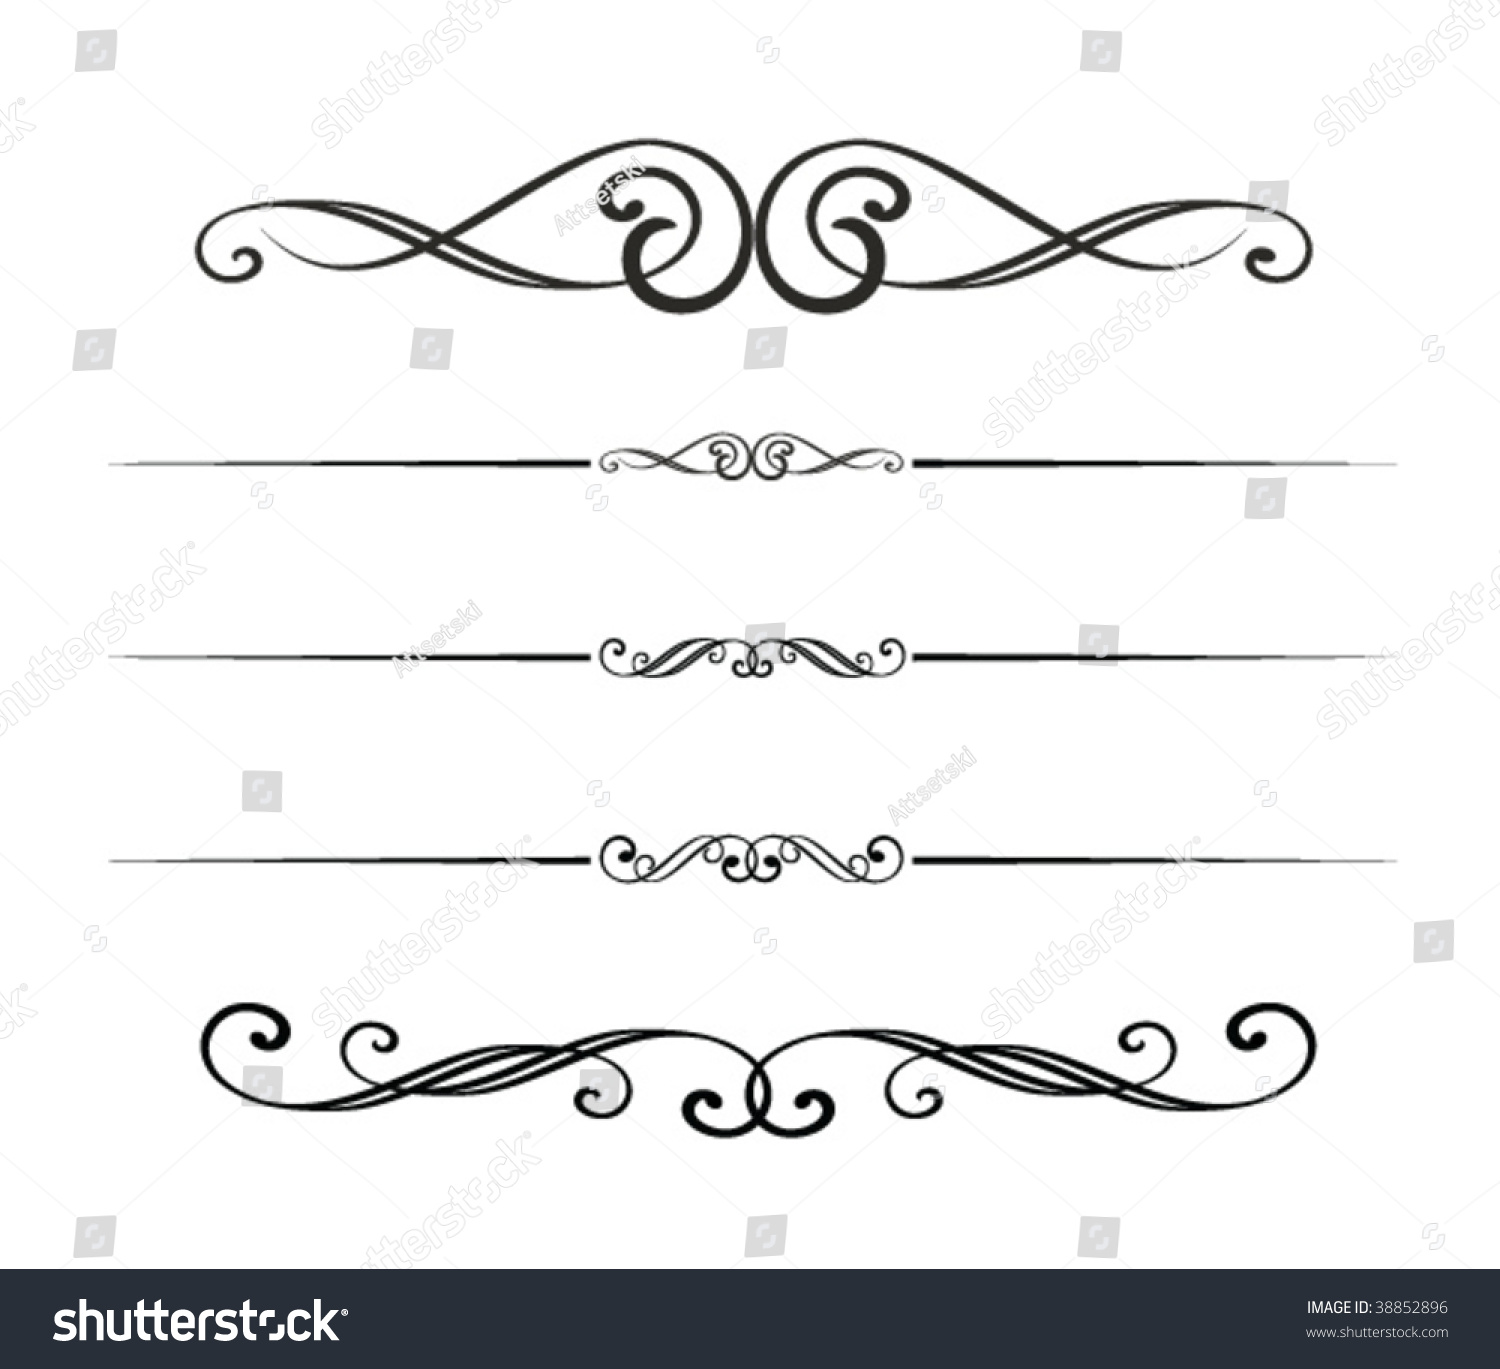 graphic design elements stock vector 38852896 shutterstock